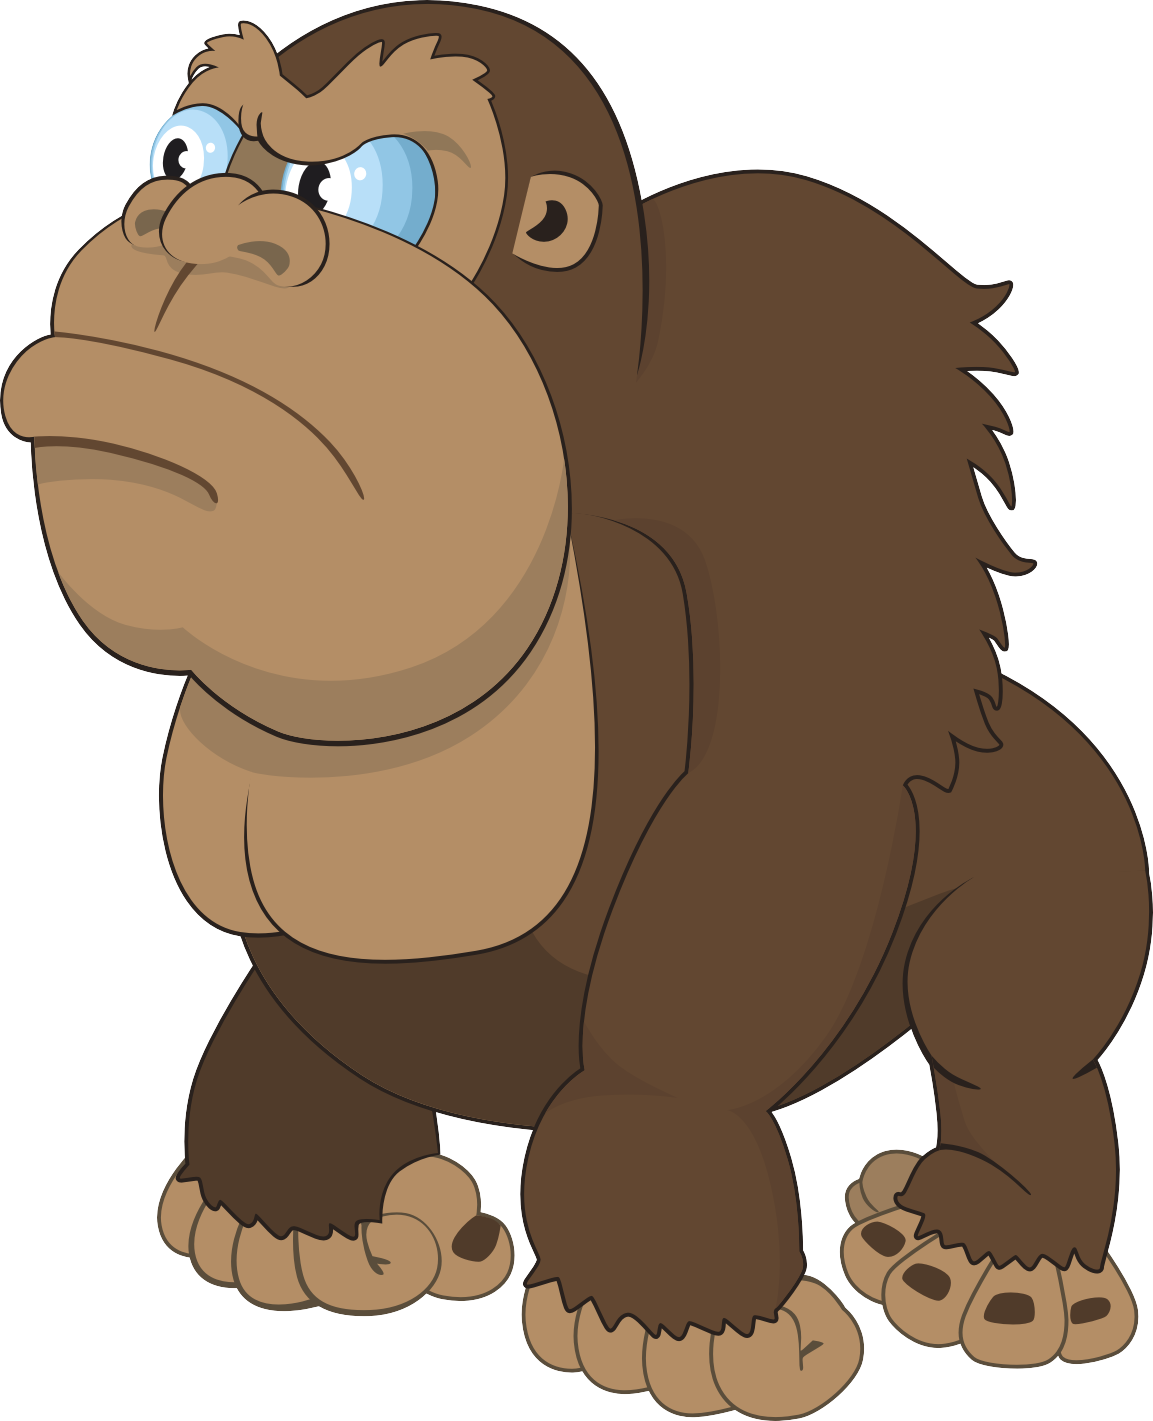 Mammal drawing king kong. Gorilla cartoon ape transprent